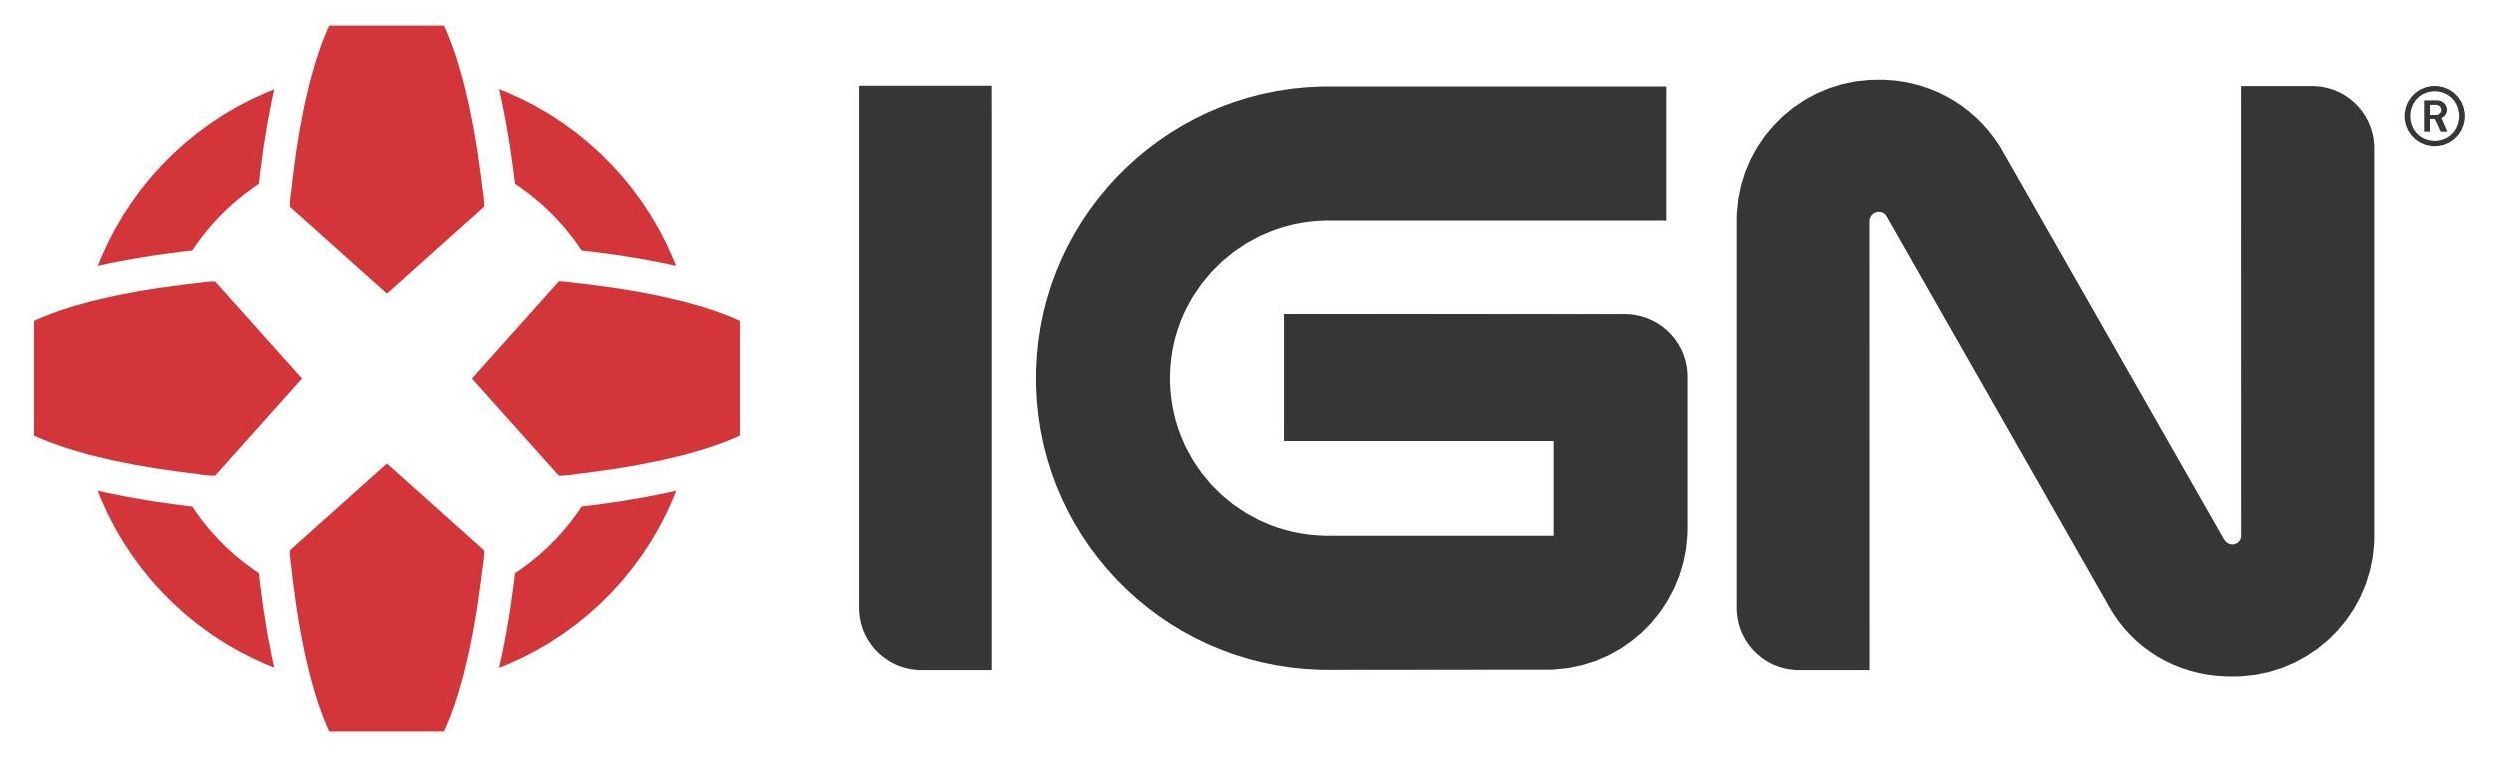 Ign Imagine Games Network Logo Eps File Free Downloads Brand Emblems New Logos Nes Console Generation Game Video Game Development